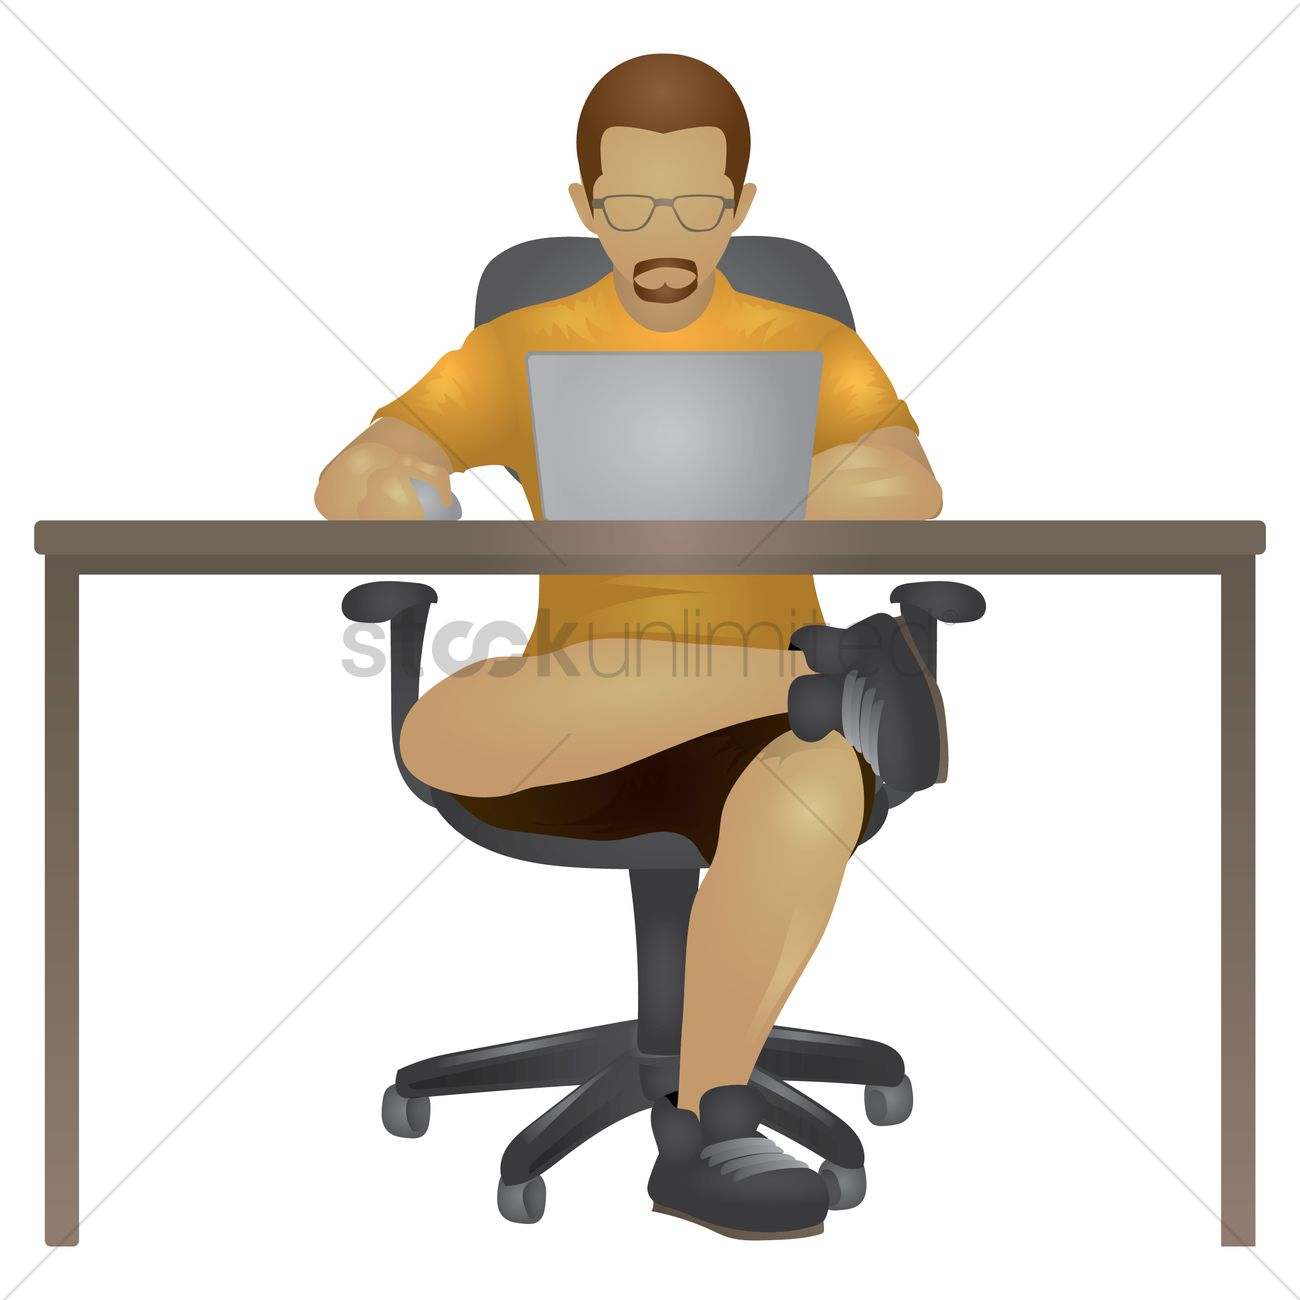 Man working on laptop Vector Image - 1698293 | StockUnlimited